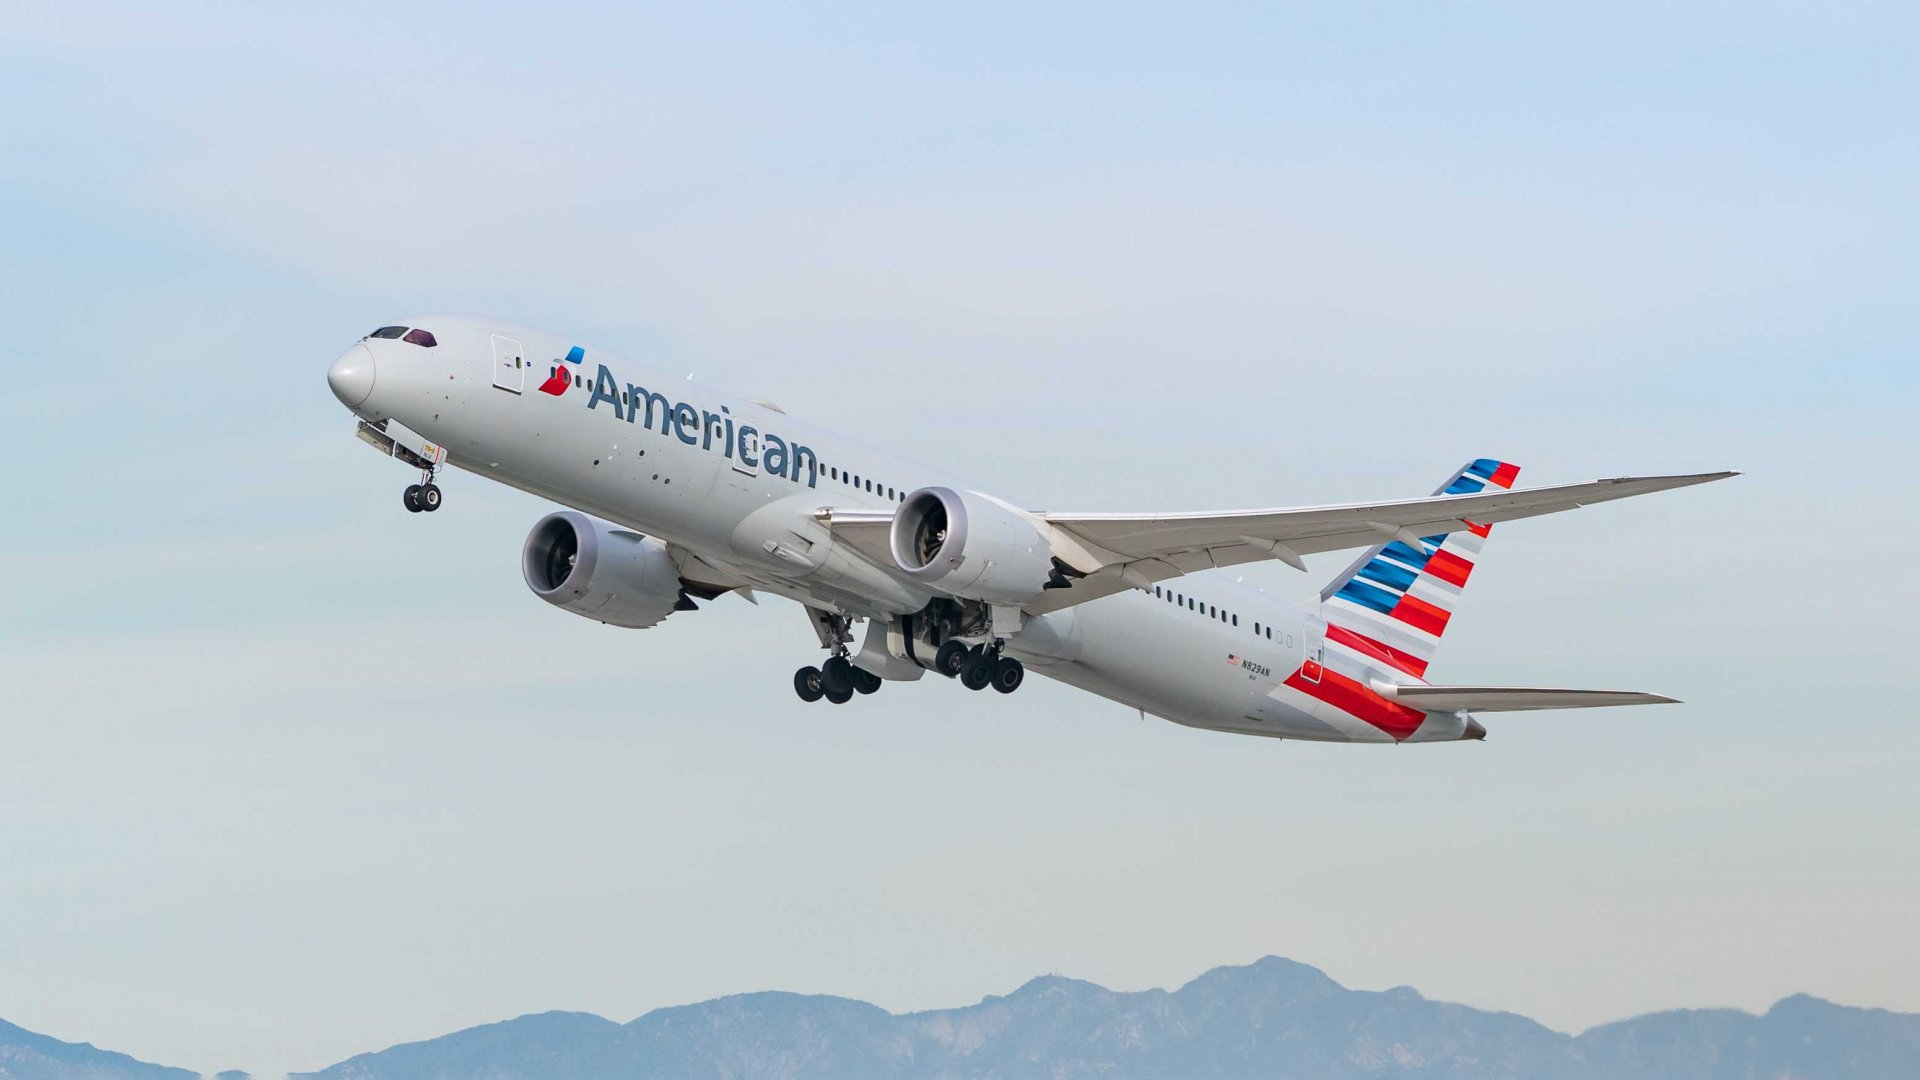 About American Airlines Groups and its work